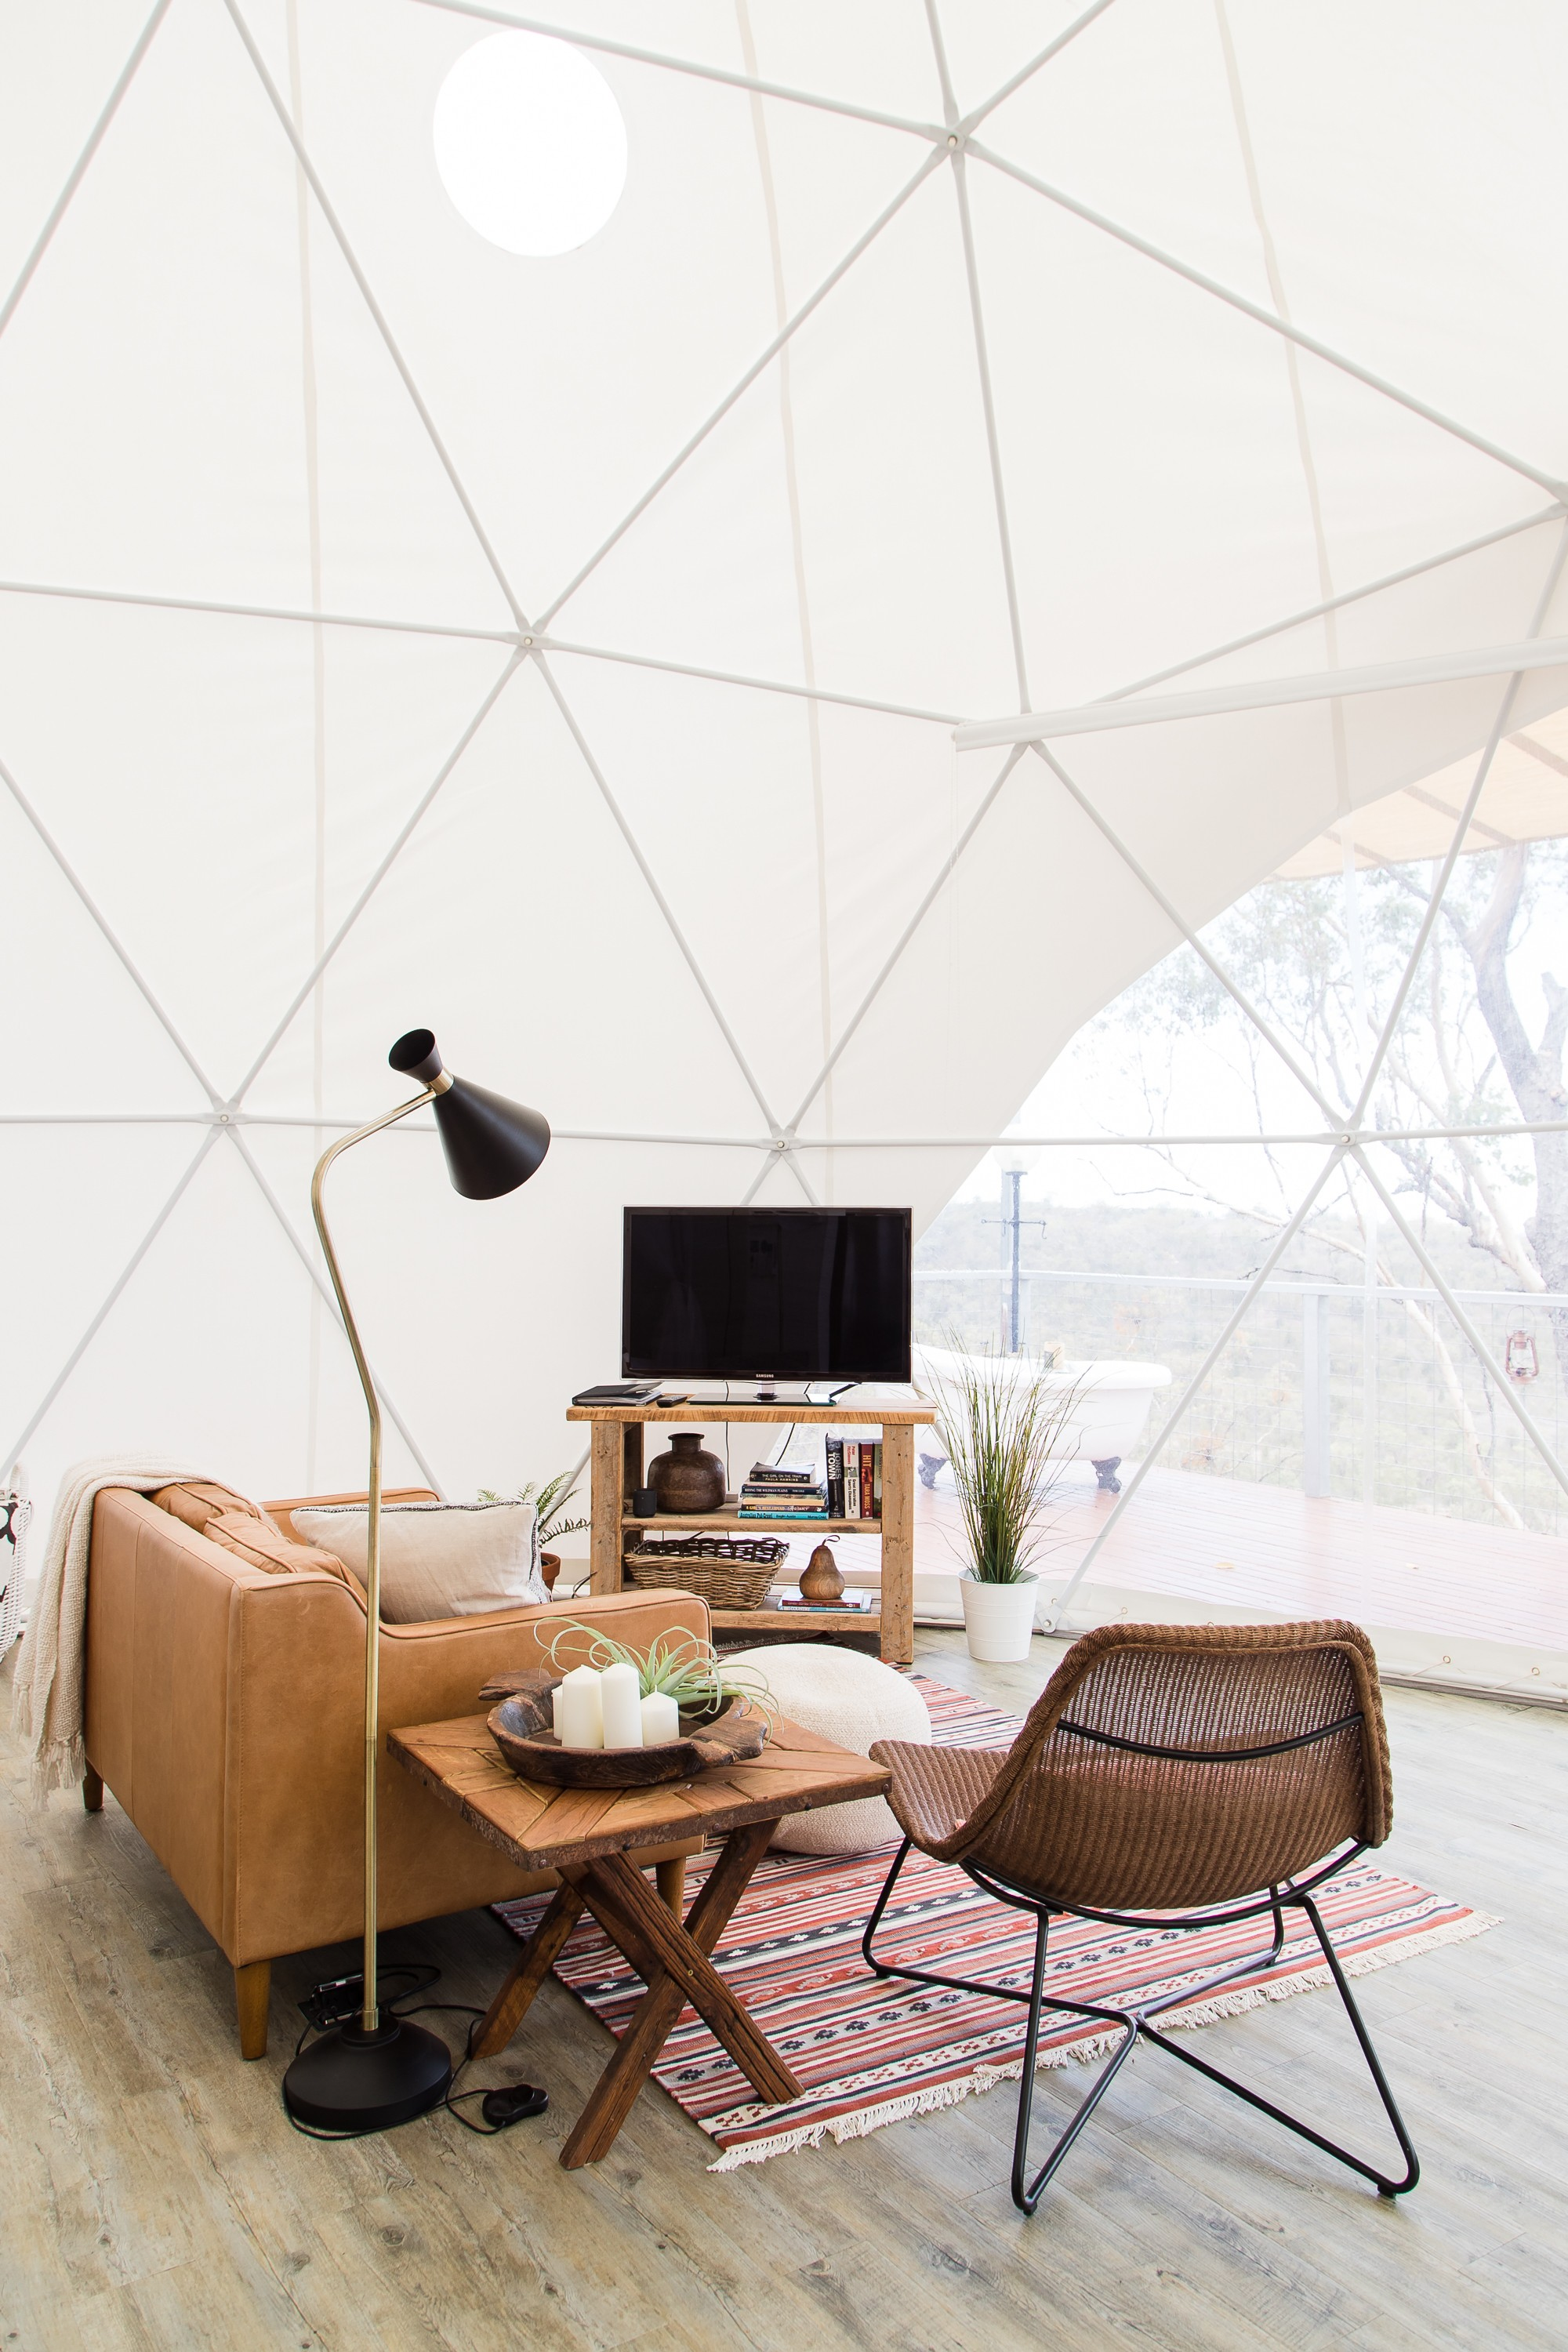 This geodesic dome is a luxurious off-grid Australian outback oasis